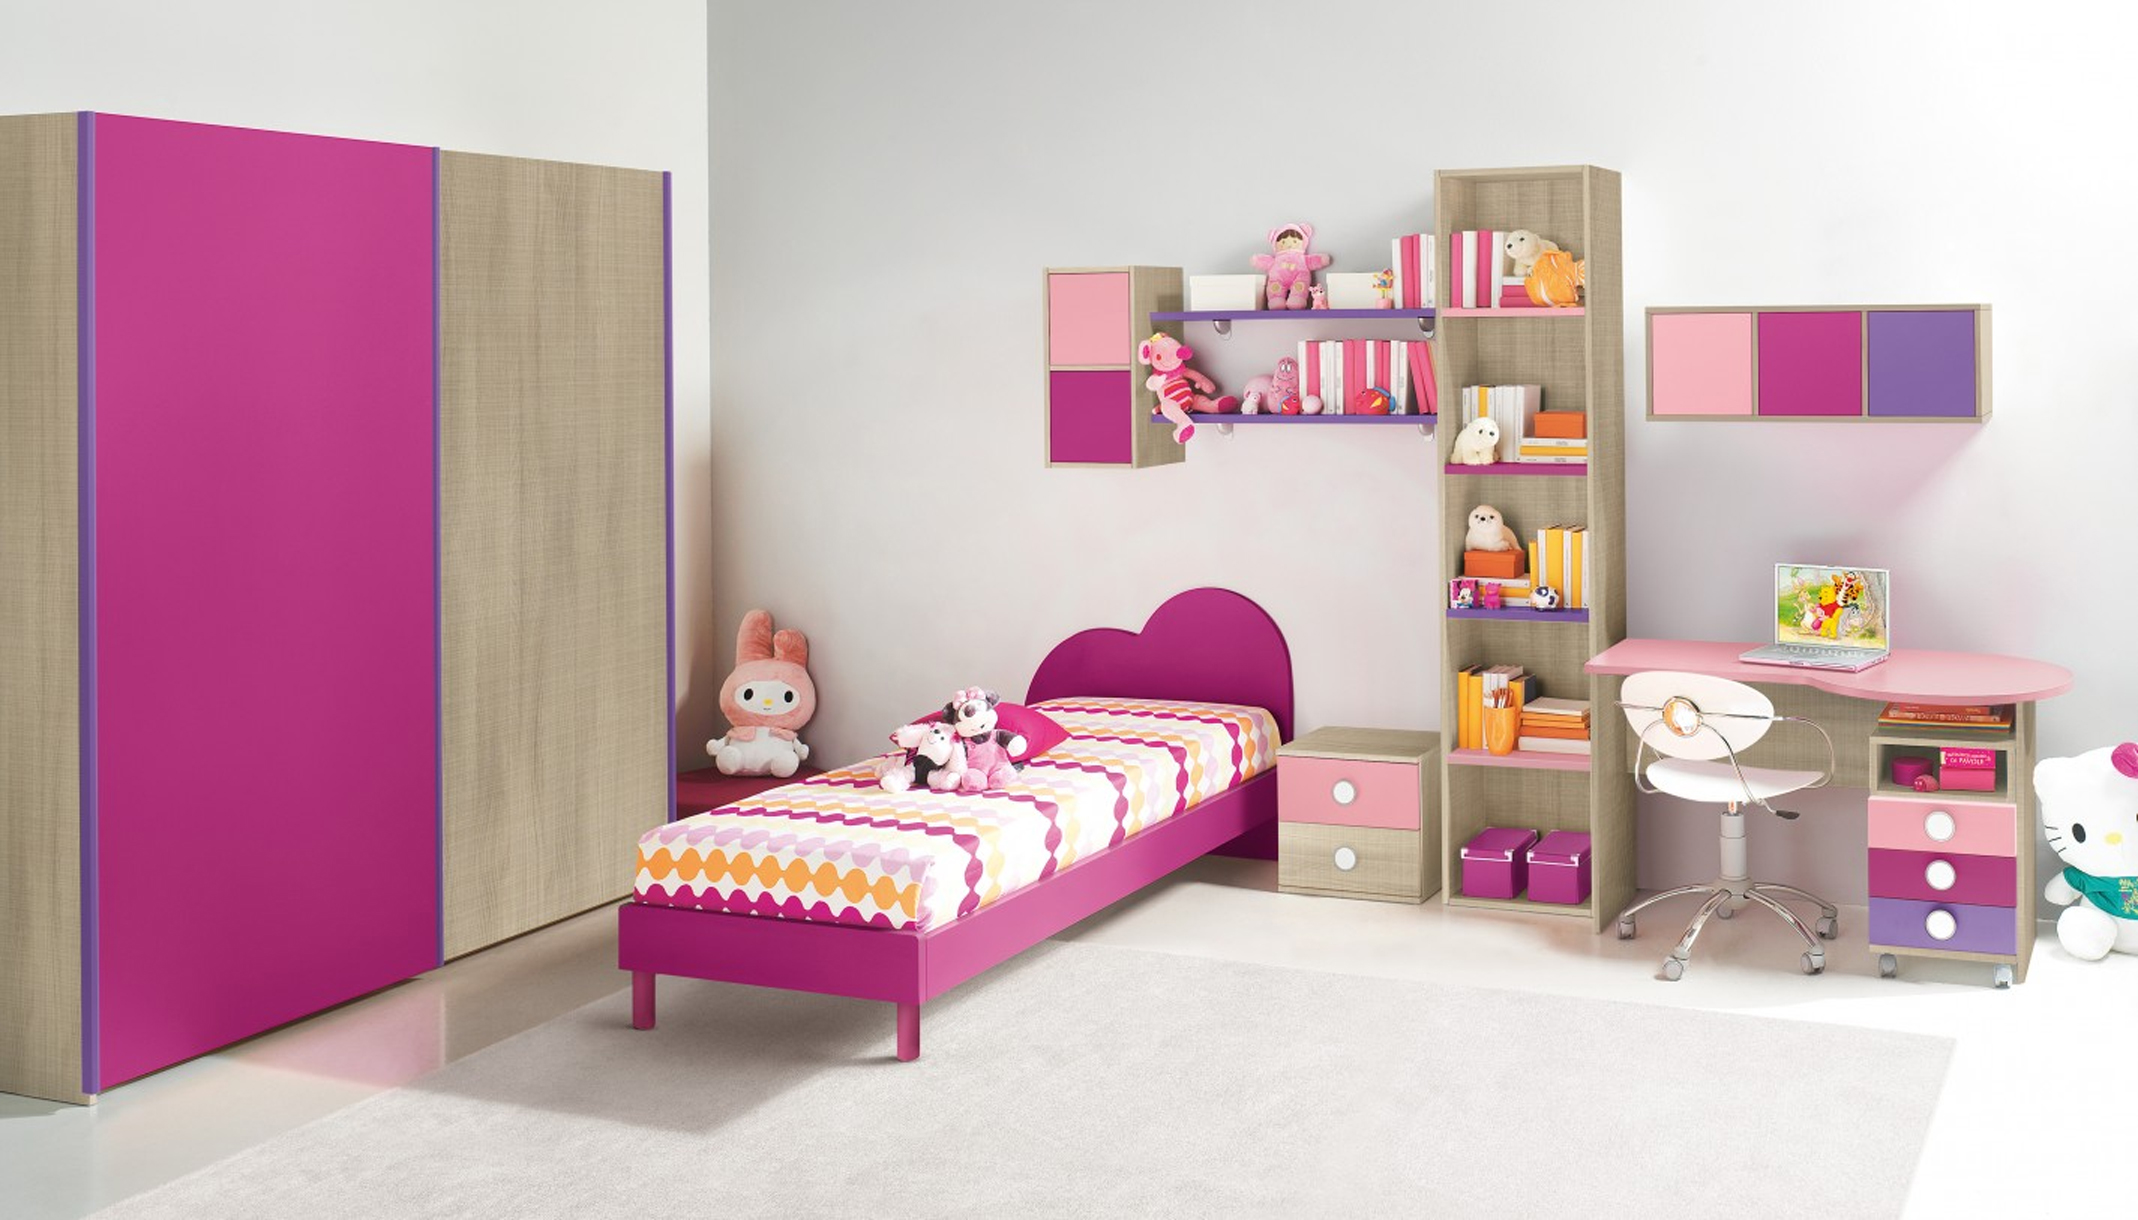 Peonia dolce casa outlet for Casa outlet